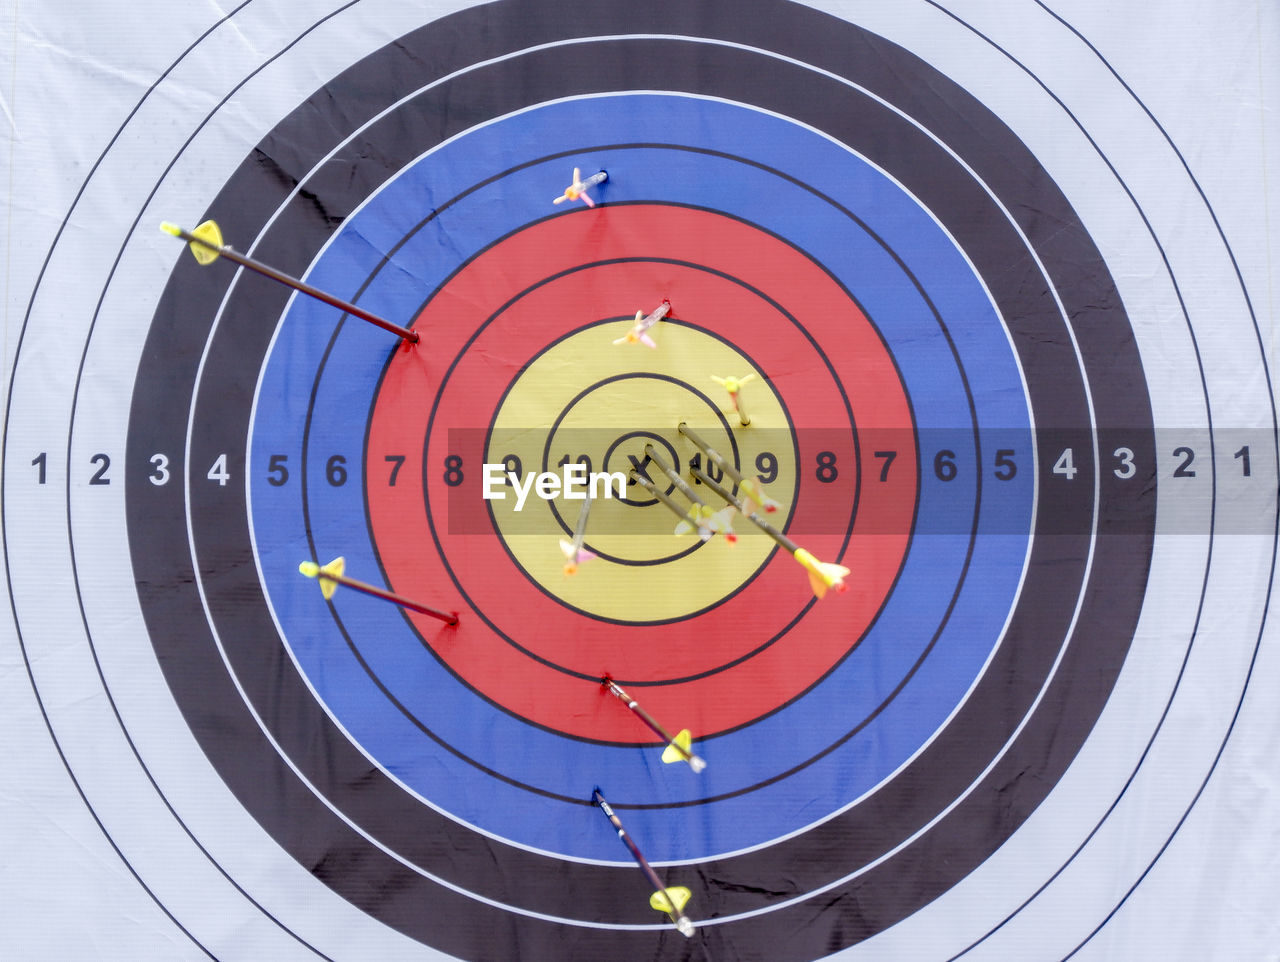 sports target, sport, circle, geometric shape, shape, accuracy, target shooting, archery, no people, multi colored, arrow - bow and arrow, achievement, aiming, success, close-up, competition, aspirations, business, pattern, scoring, concentric, arrow